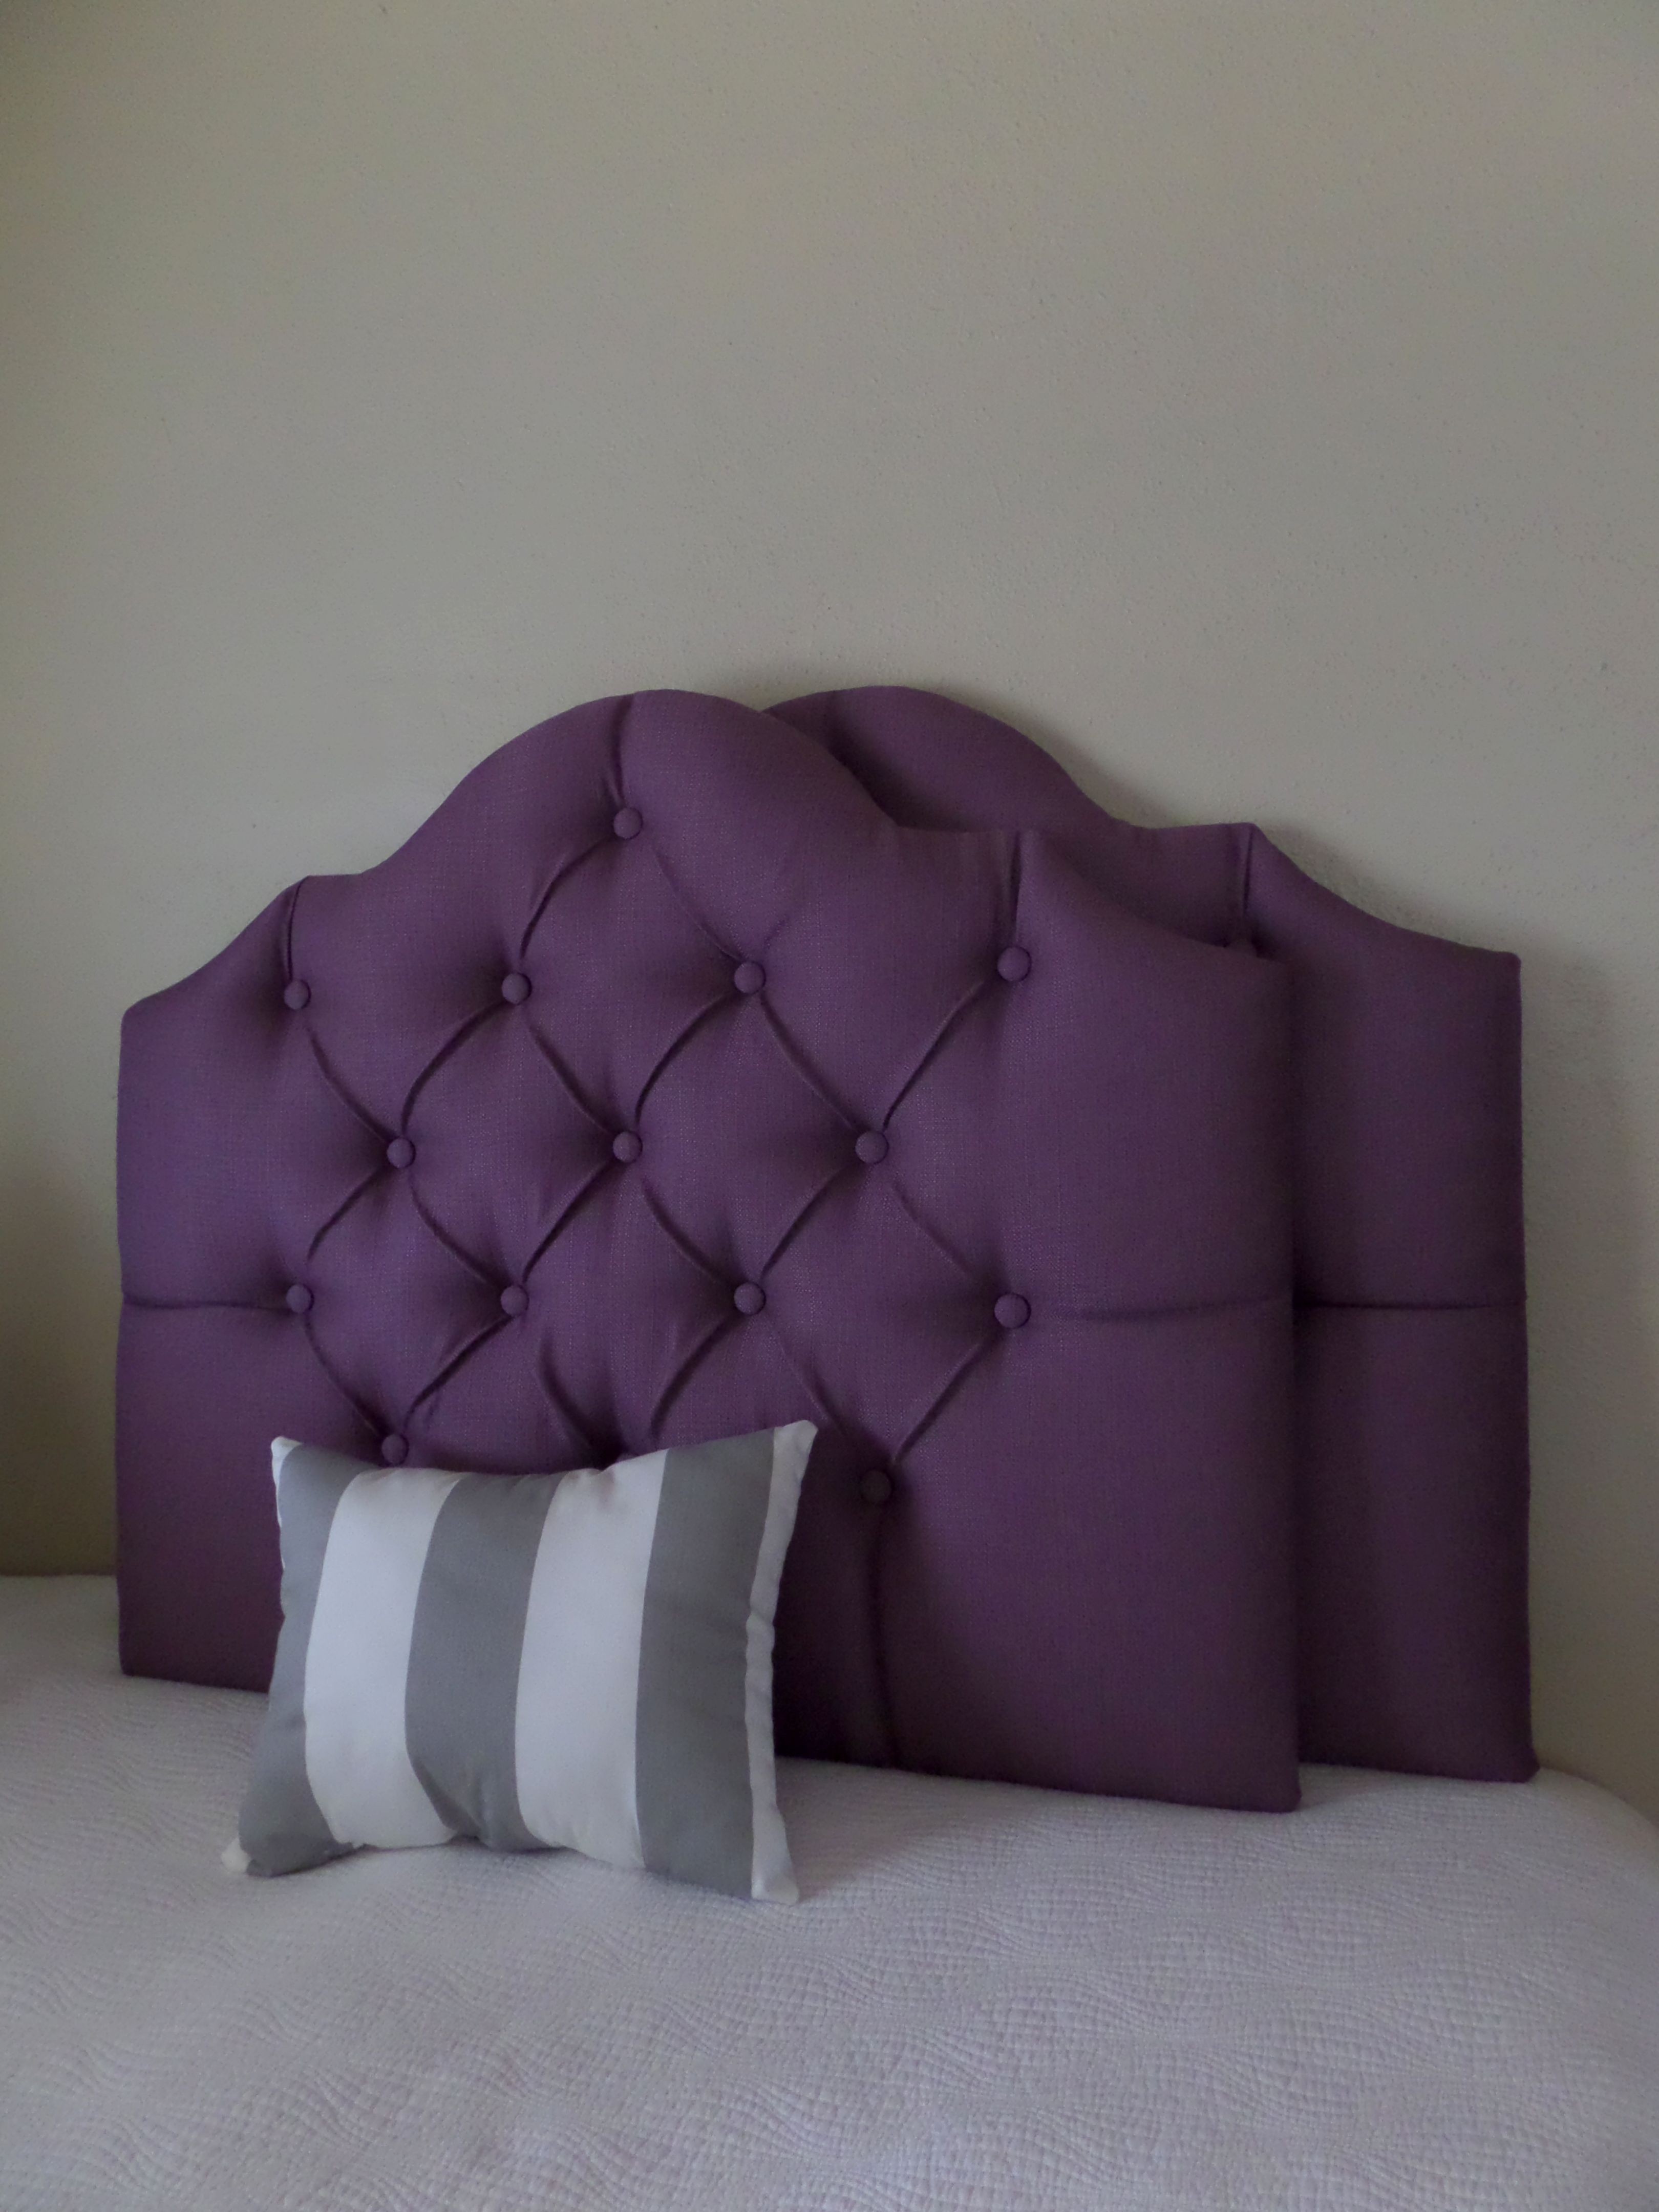 Twin Size Tufted Upholstered Headboard Eggplant Plum Purple Custom Wall Mounted Tufted Upholstered Headboard Dorm